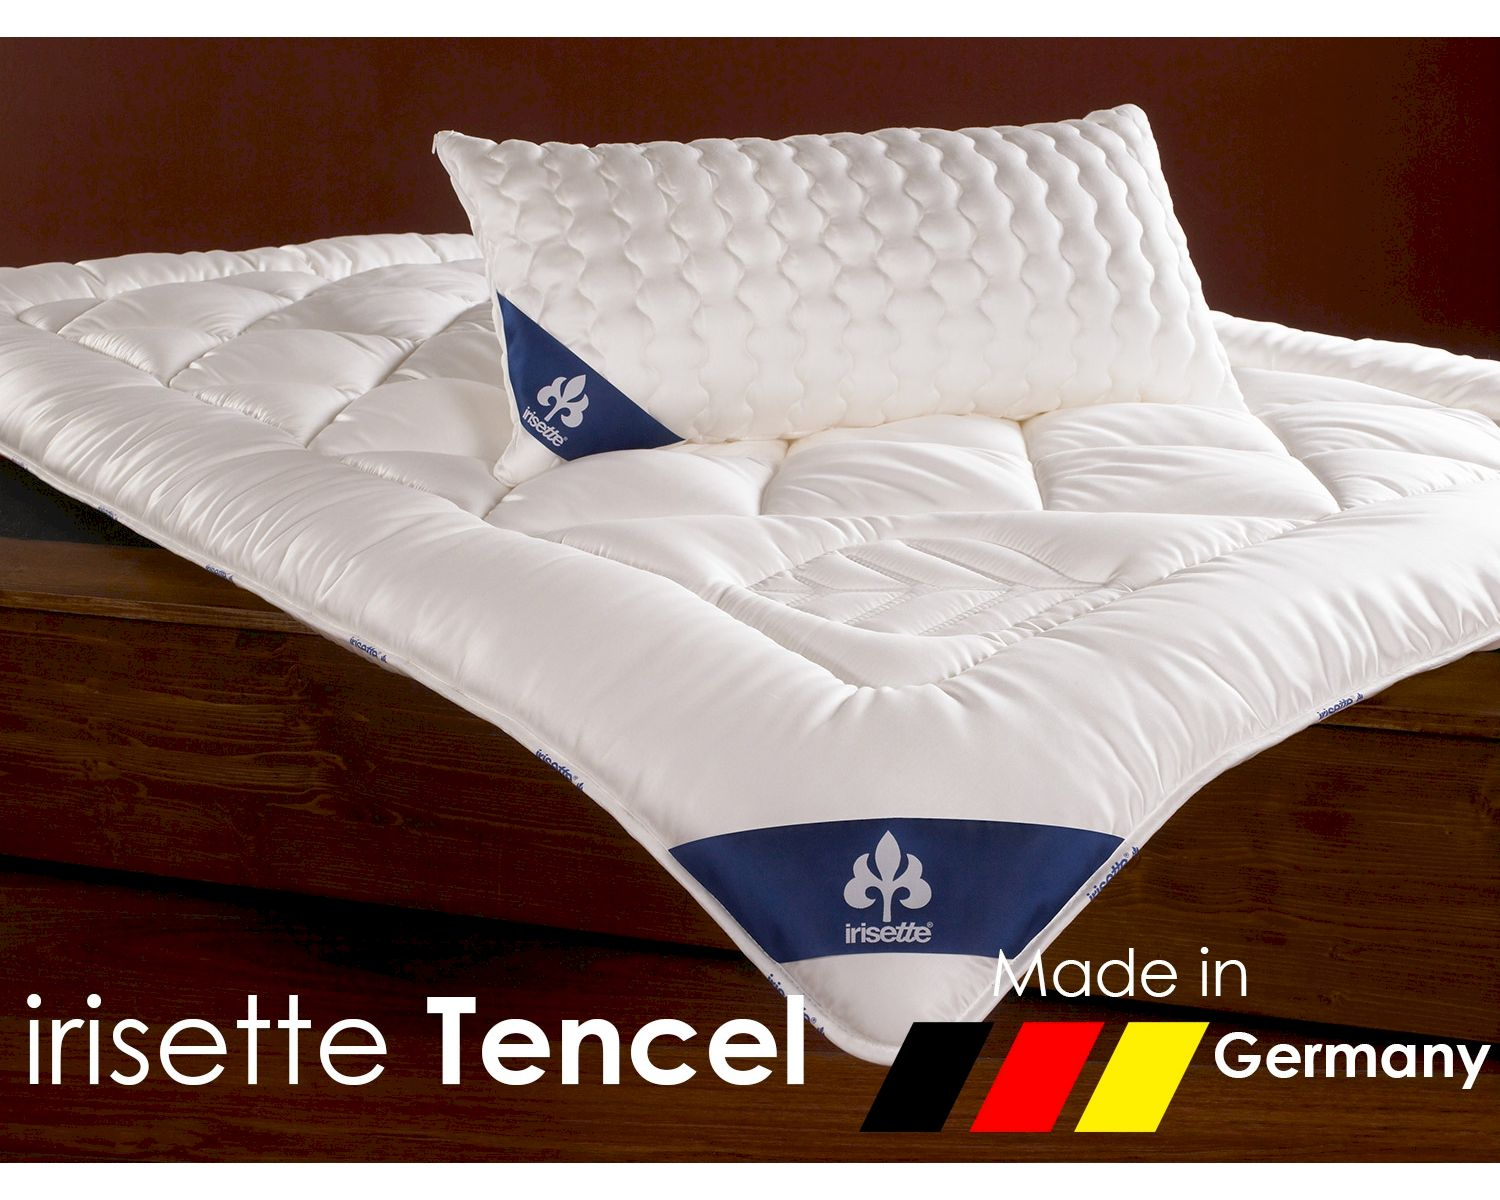 Bettdecken Tencel Irisette Tencel Bettdecken